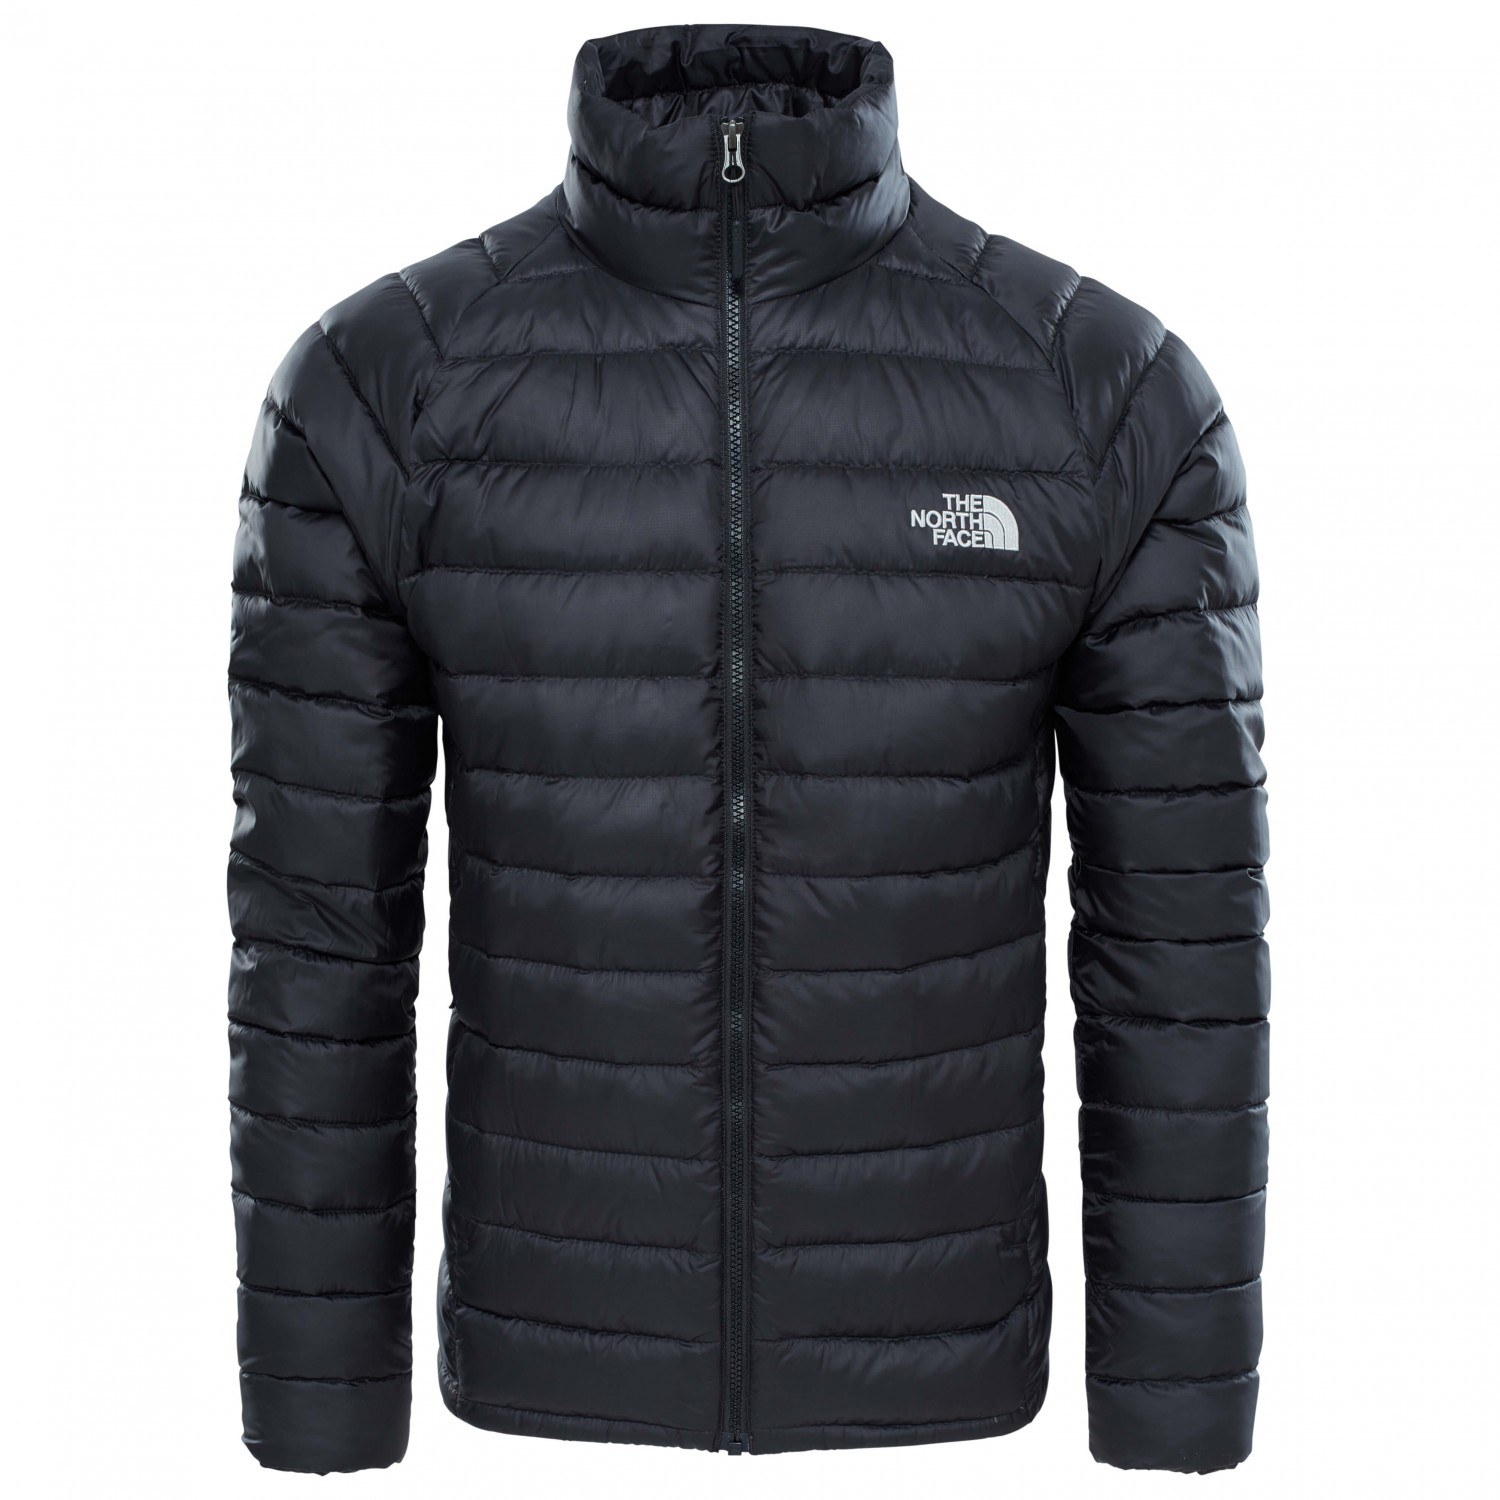 2173b2755683 The North Face Trevail Jacket - Down Jacket Men s